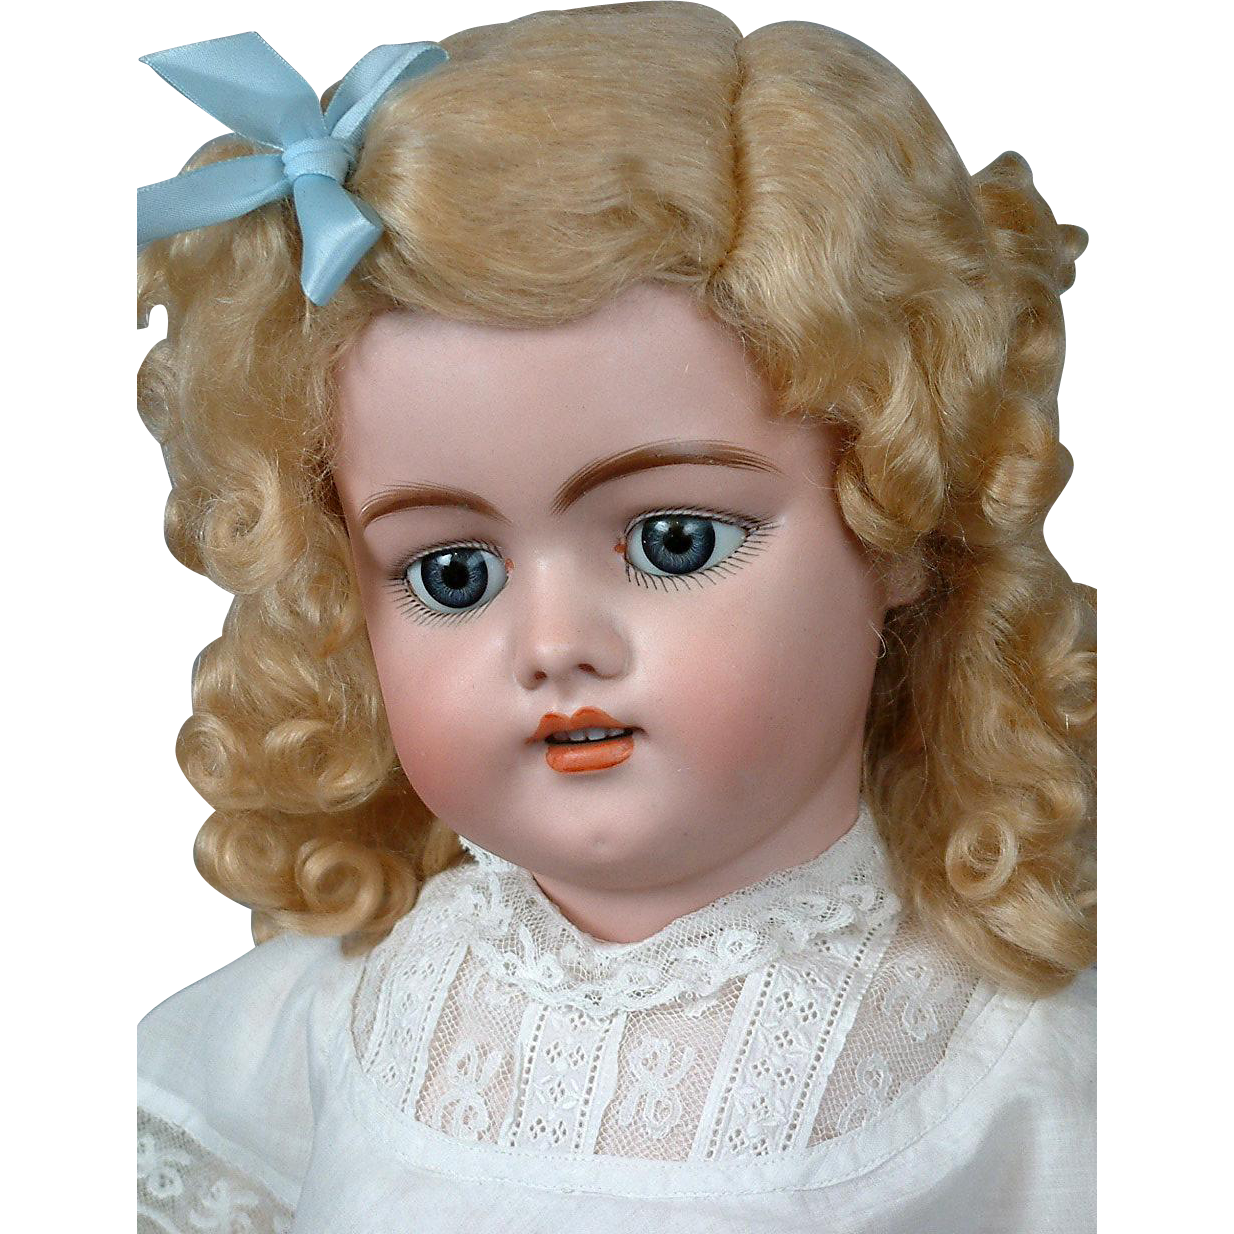 "*Blond & Beautiful* Simon & Halbig 1079 24"" Antique Bisque Doll"